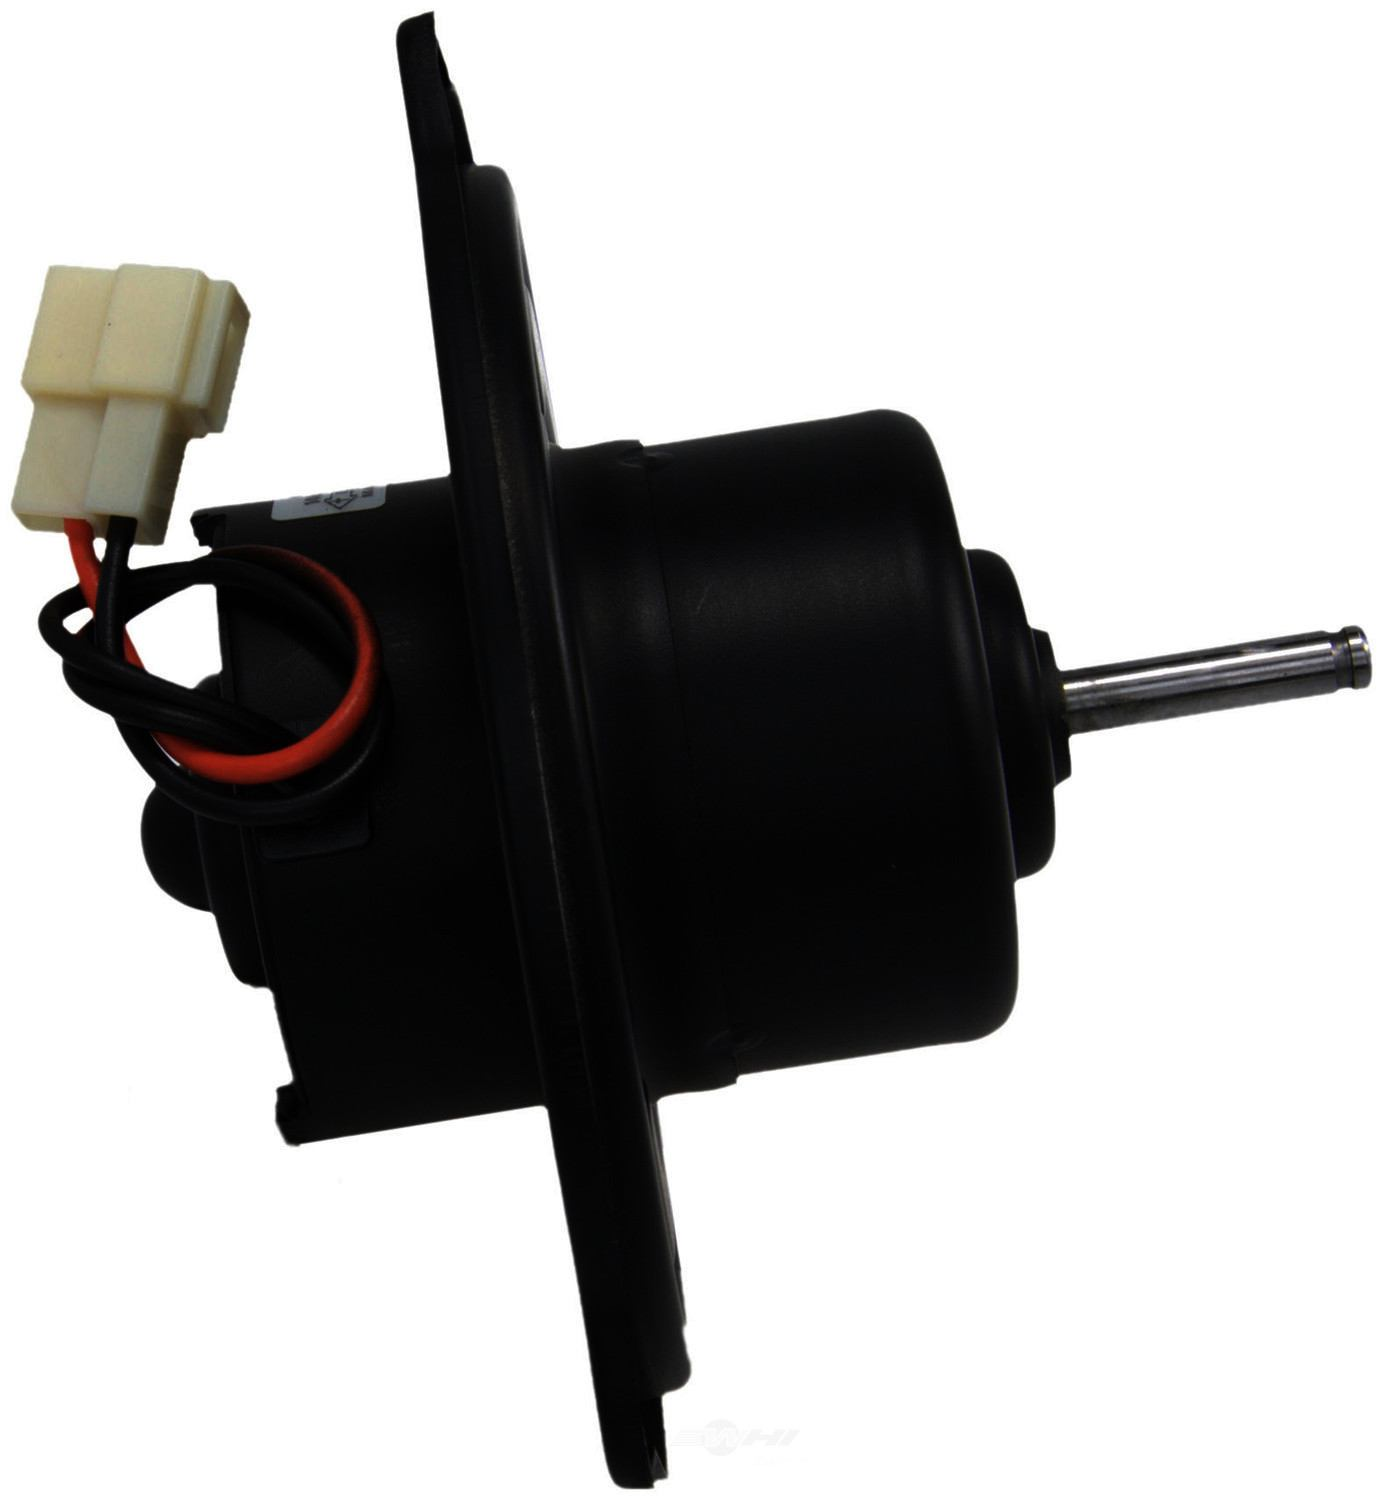 ACDELCO PROFESSIONAL - HVAC Blower Motor - DCC 15-80405